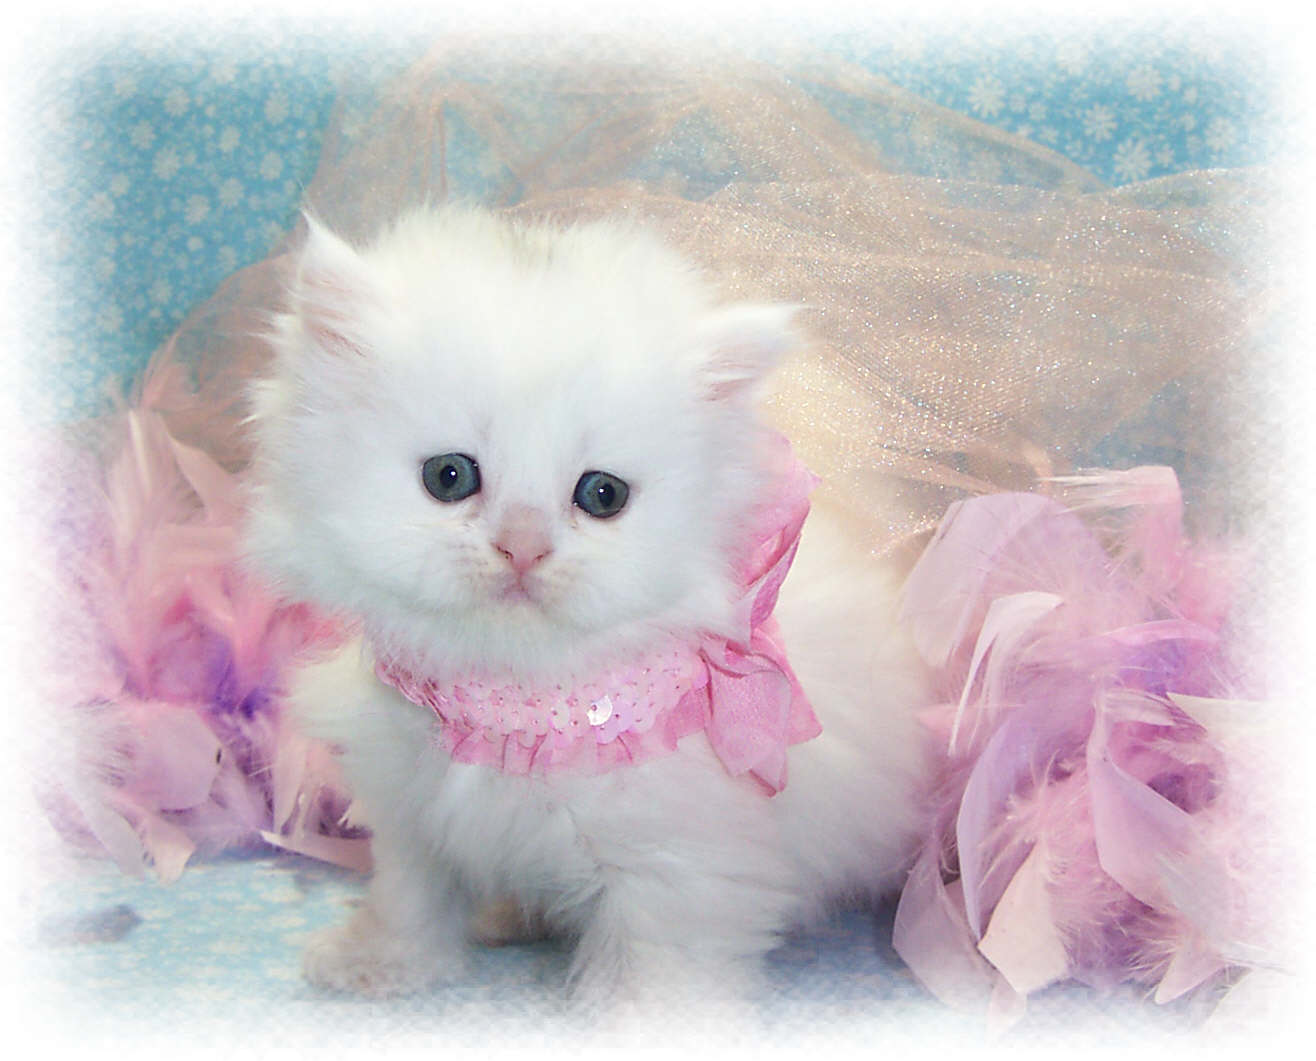 Cute Kitties Hd Wallpapers 30 Cute And Lovely Cat Wallpapers For Desktop